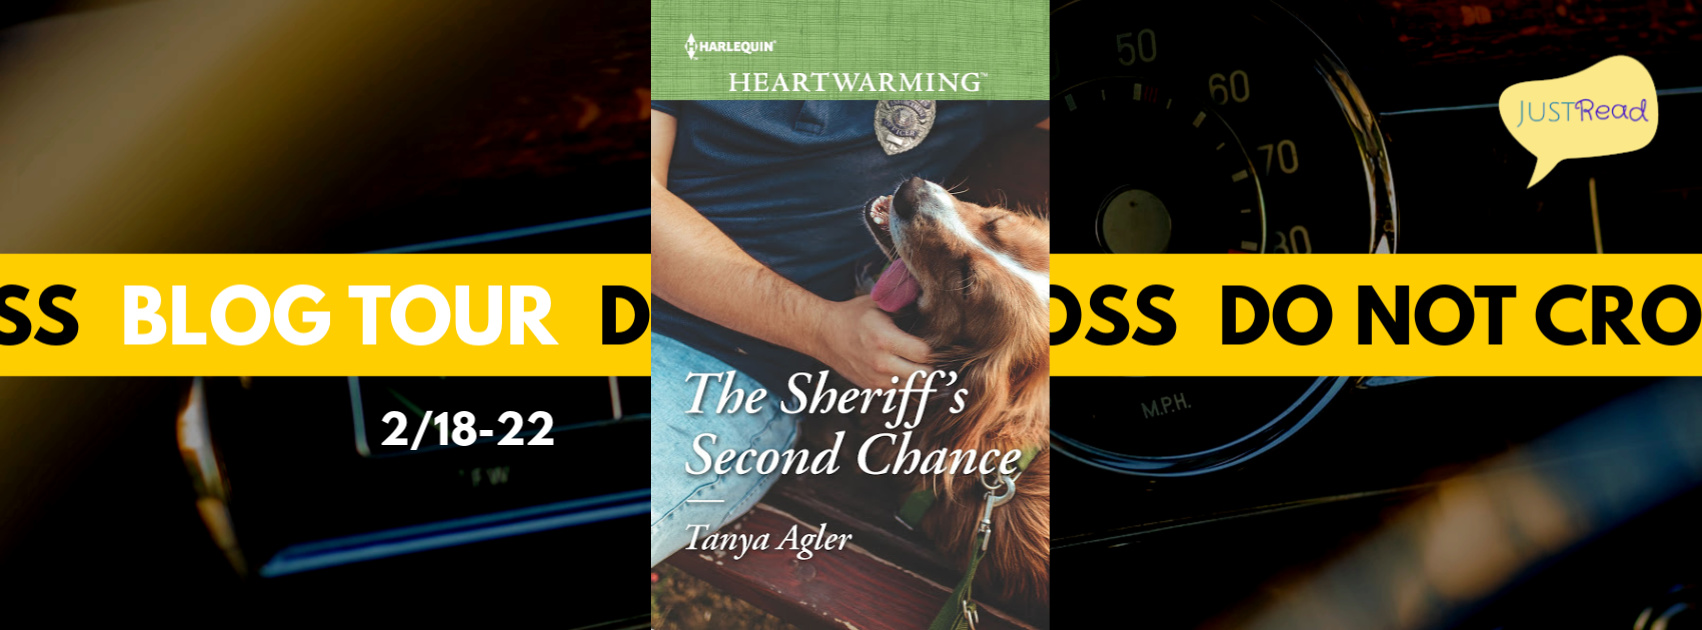 Welcome to The Sheriff's Second Chance Blog Tour & Giveaway!